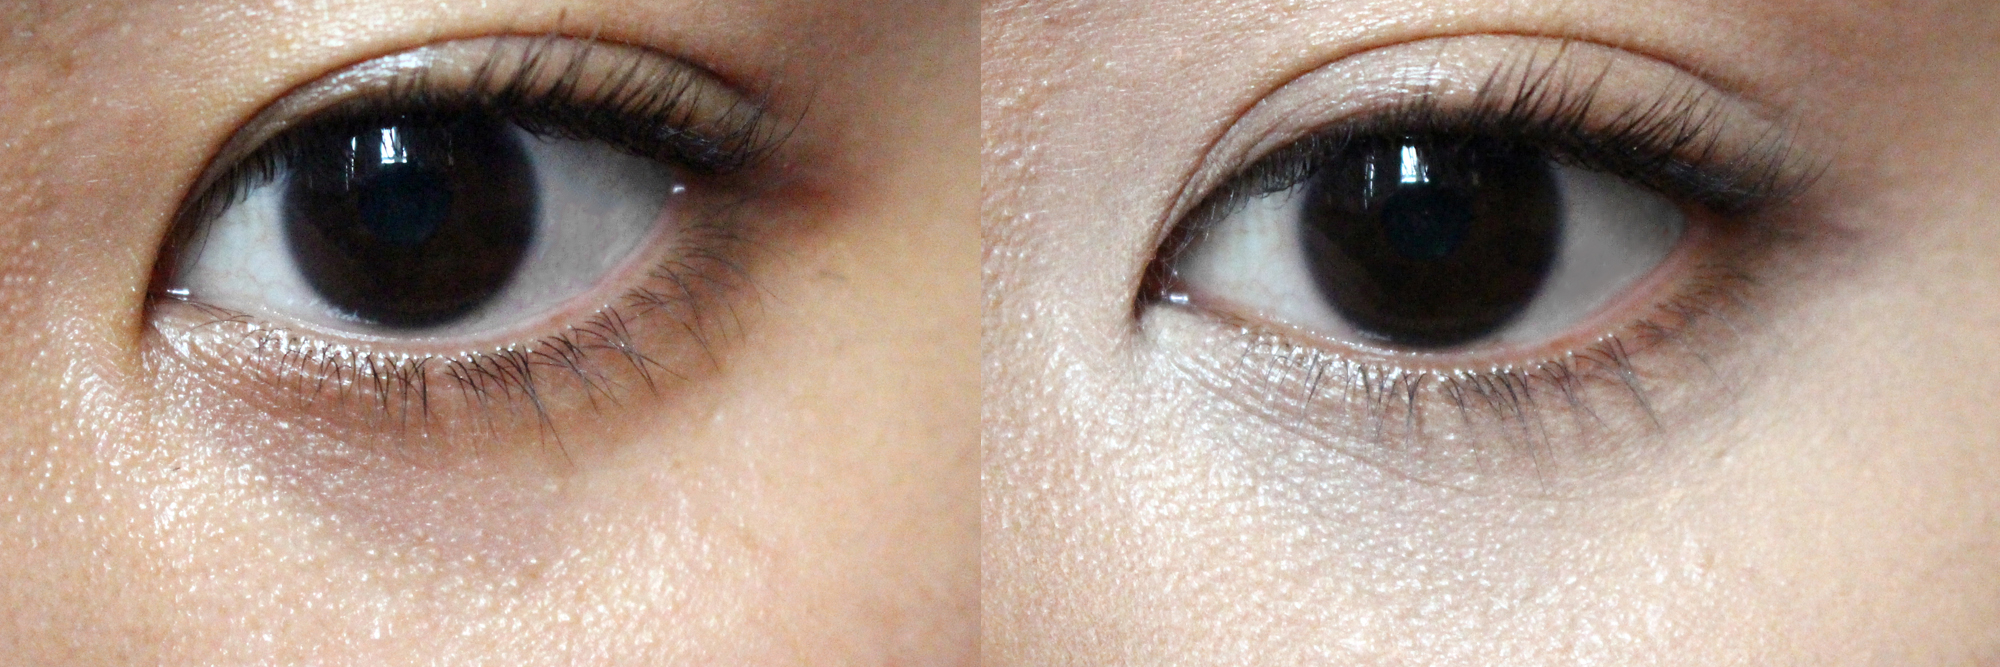 MAYBELLINE FIT ME CONCEALER BEFORE AND AFTER